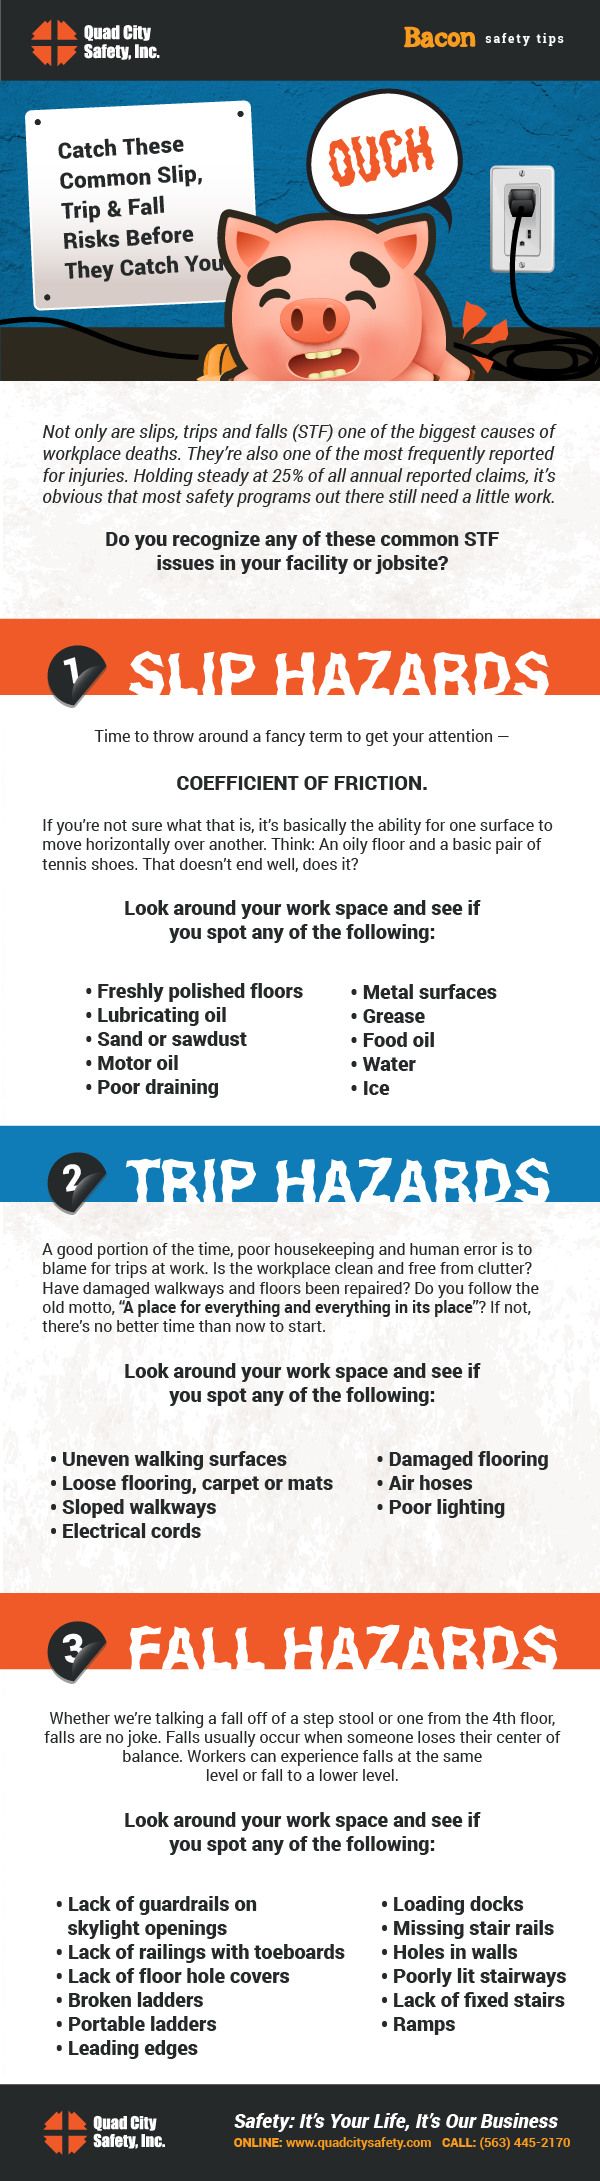 "Catch These Common Slip, Trip & Fall Risks Before They Catch You  Not only are slips, trips and falls (STF) one of the biggest causes of workplace deaths. They're also one of the most frequently reported for injuries. Holding steady at 25% of all annual reported claims, it's obvious that most safety programs out there still need a little work.   Do you recognize any of these common STF issues in your facility or jobsite?   Slip Hazards  Time to throw around a fancy term to get your attention — Coefficient of Friction.   If you're not sure what that is, it's basically the ability for one surface to move horizontally over another. Think: An oily floor and a basic pair of tennis shoes. That doesn't end well, does it?  Look around your work space and see if you spot any of the following:    Freshly polished floors Lubricating oil Sand or sawdust Motor oil Poor draining Metal surfaces Grease Food oil Water Ice    Trip Hazards  A good portion of the time, poor housekeeping and human error is to blame for trips at work. Is the workplace clean and free from clutter? Have damaged walkways and floors been repaired? Do you follow the old motto, ""A place for everything and everything in its place""? If not, there's no better time than now to start.   Look around your work space and see if you spot any of the following:    Uneven walking surfaces Loose flooring, carpet or mats Sloped walkways Electrical cords Damaged flooring Air hoses  Poor lighting    Fall Hazards  Whether we're talking a fall off of a step stool or one from the 4th floor, falls are no joke. Falls usually occur when someone loses their center of balance. Workers can experience falls at the same level or fall to a lower level.   Look around your work space and see if you spot any of the following:   Lack of guardrails on skylight openings Lack of railings with toeboards Lack of floor hole covers Broken ladders Portable ladders Leading edges Loading docks Missing stair rails  Holes in walls  Poorly lit stairways Lack of fixed stairs Ramps"